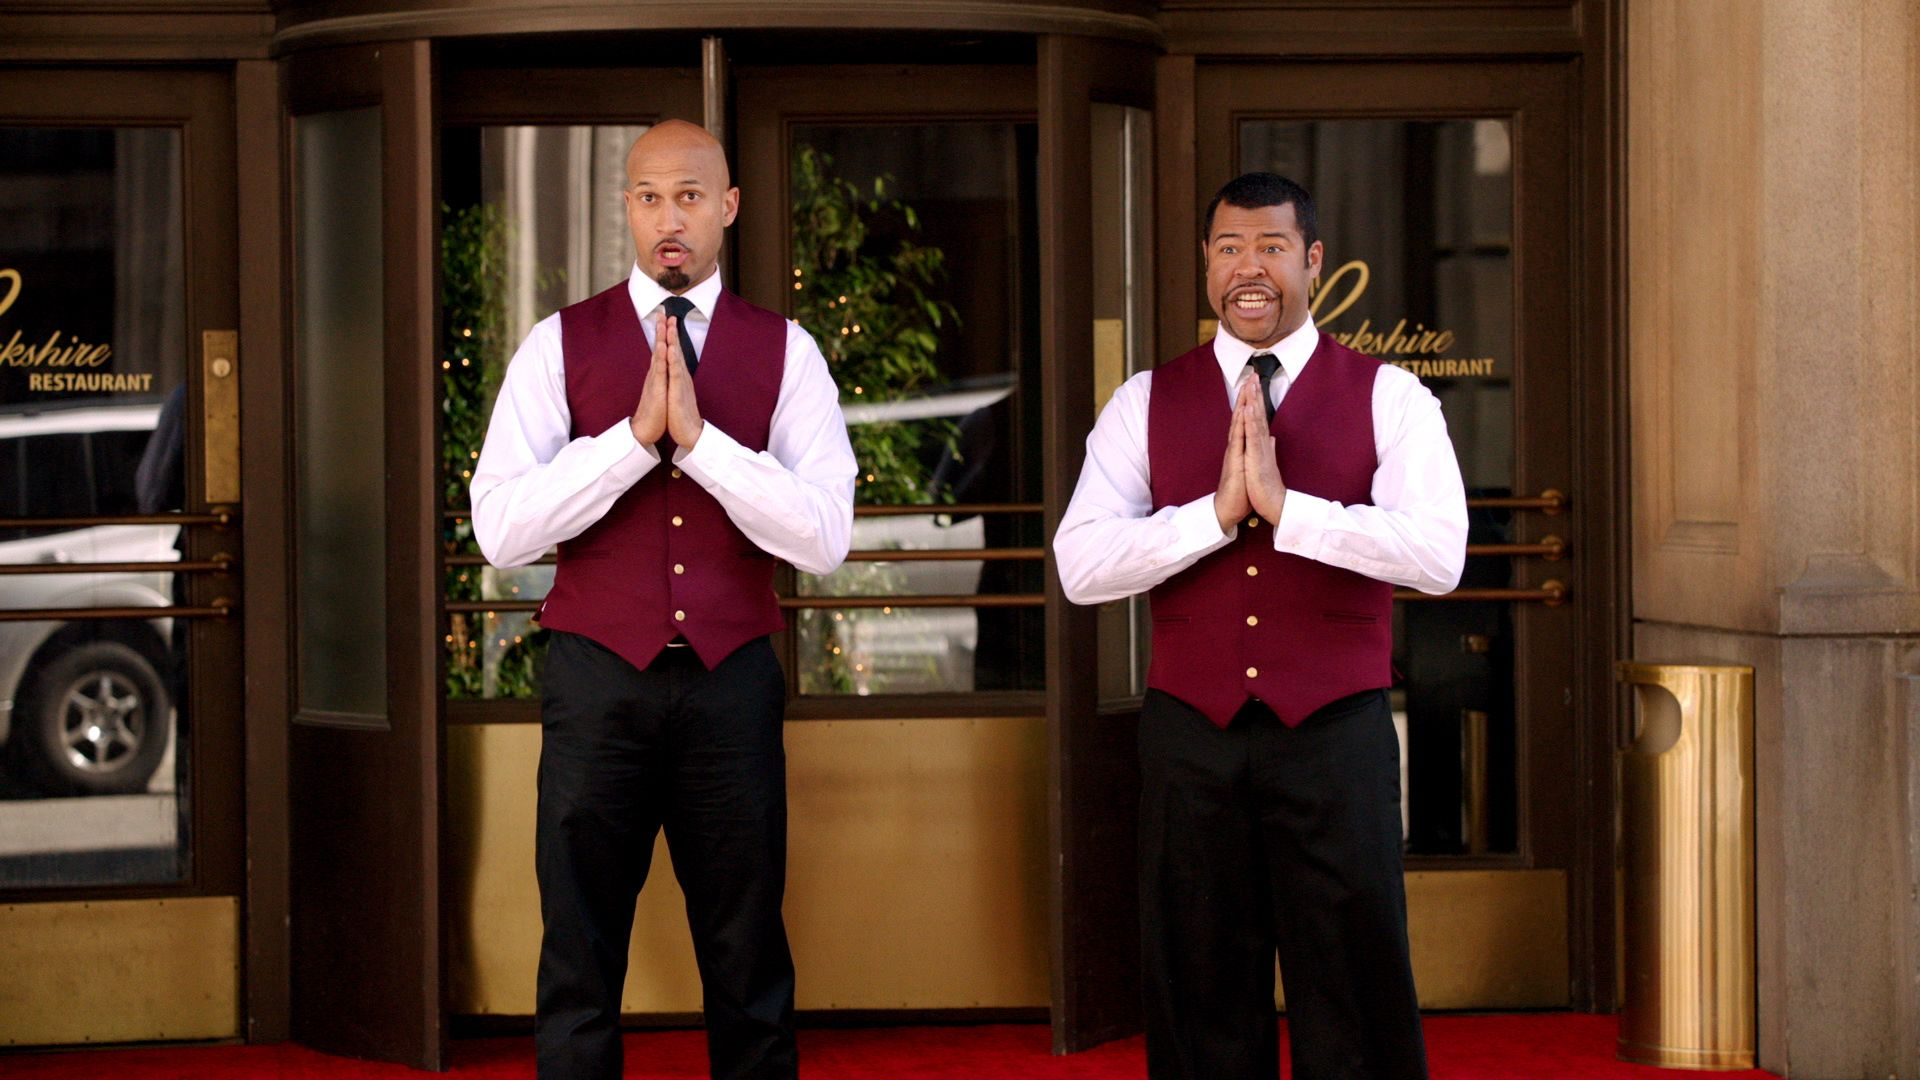 Melly Gibsons - Key and Peele (Video Clip)